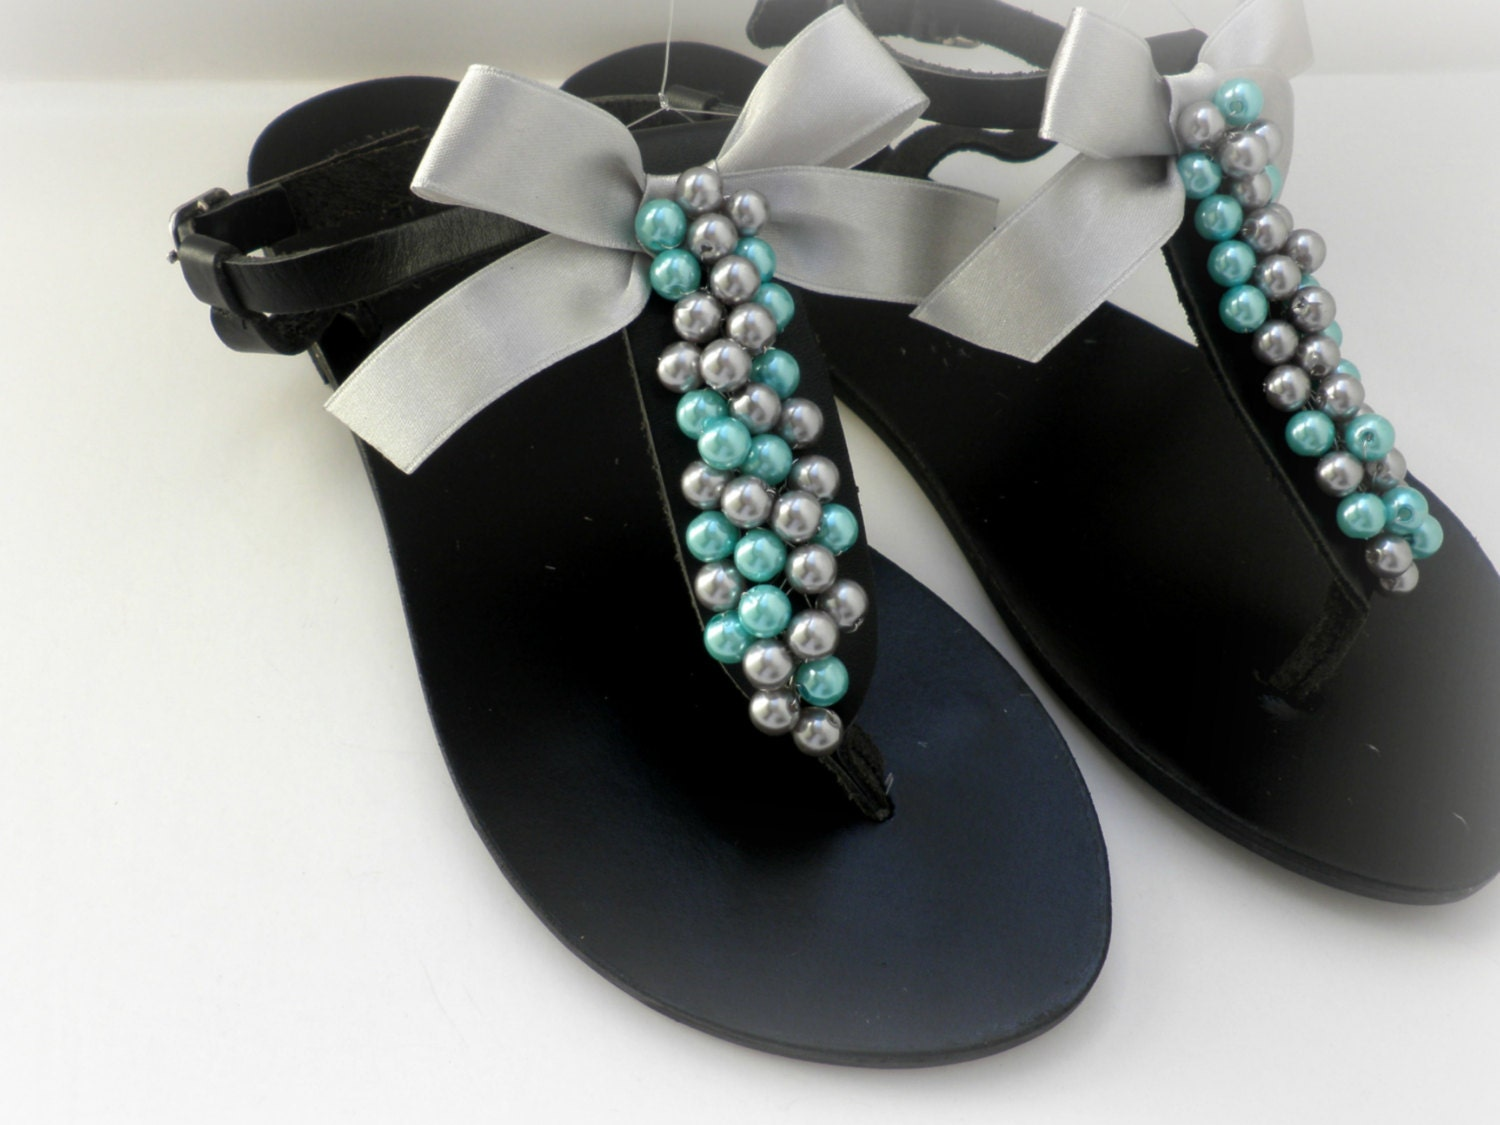 1080044abf0 Black leather sandals decorated with mix silver turquoise pearls and silver  satin bow